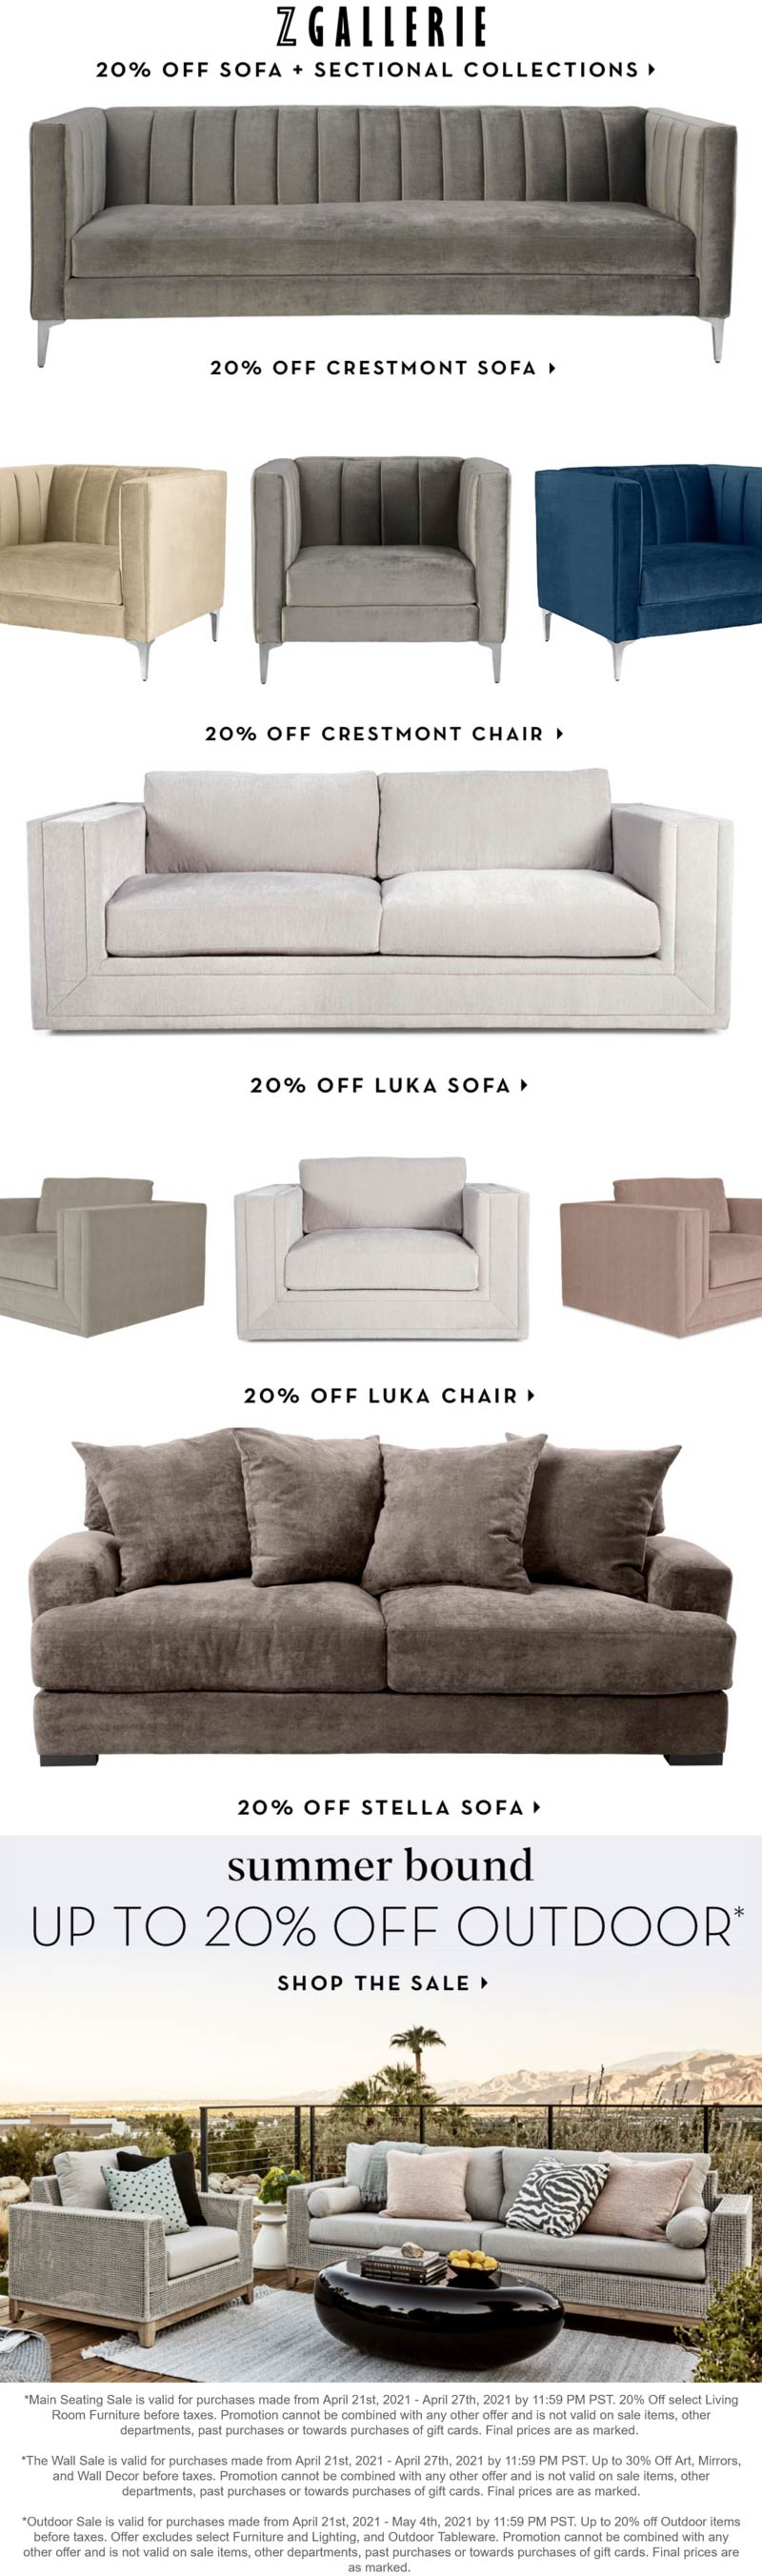 Z Gallerie stores Coupon  20% off sofa collections & outdoor at Z Gallerie #zgallerie